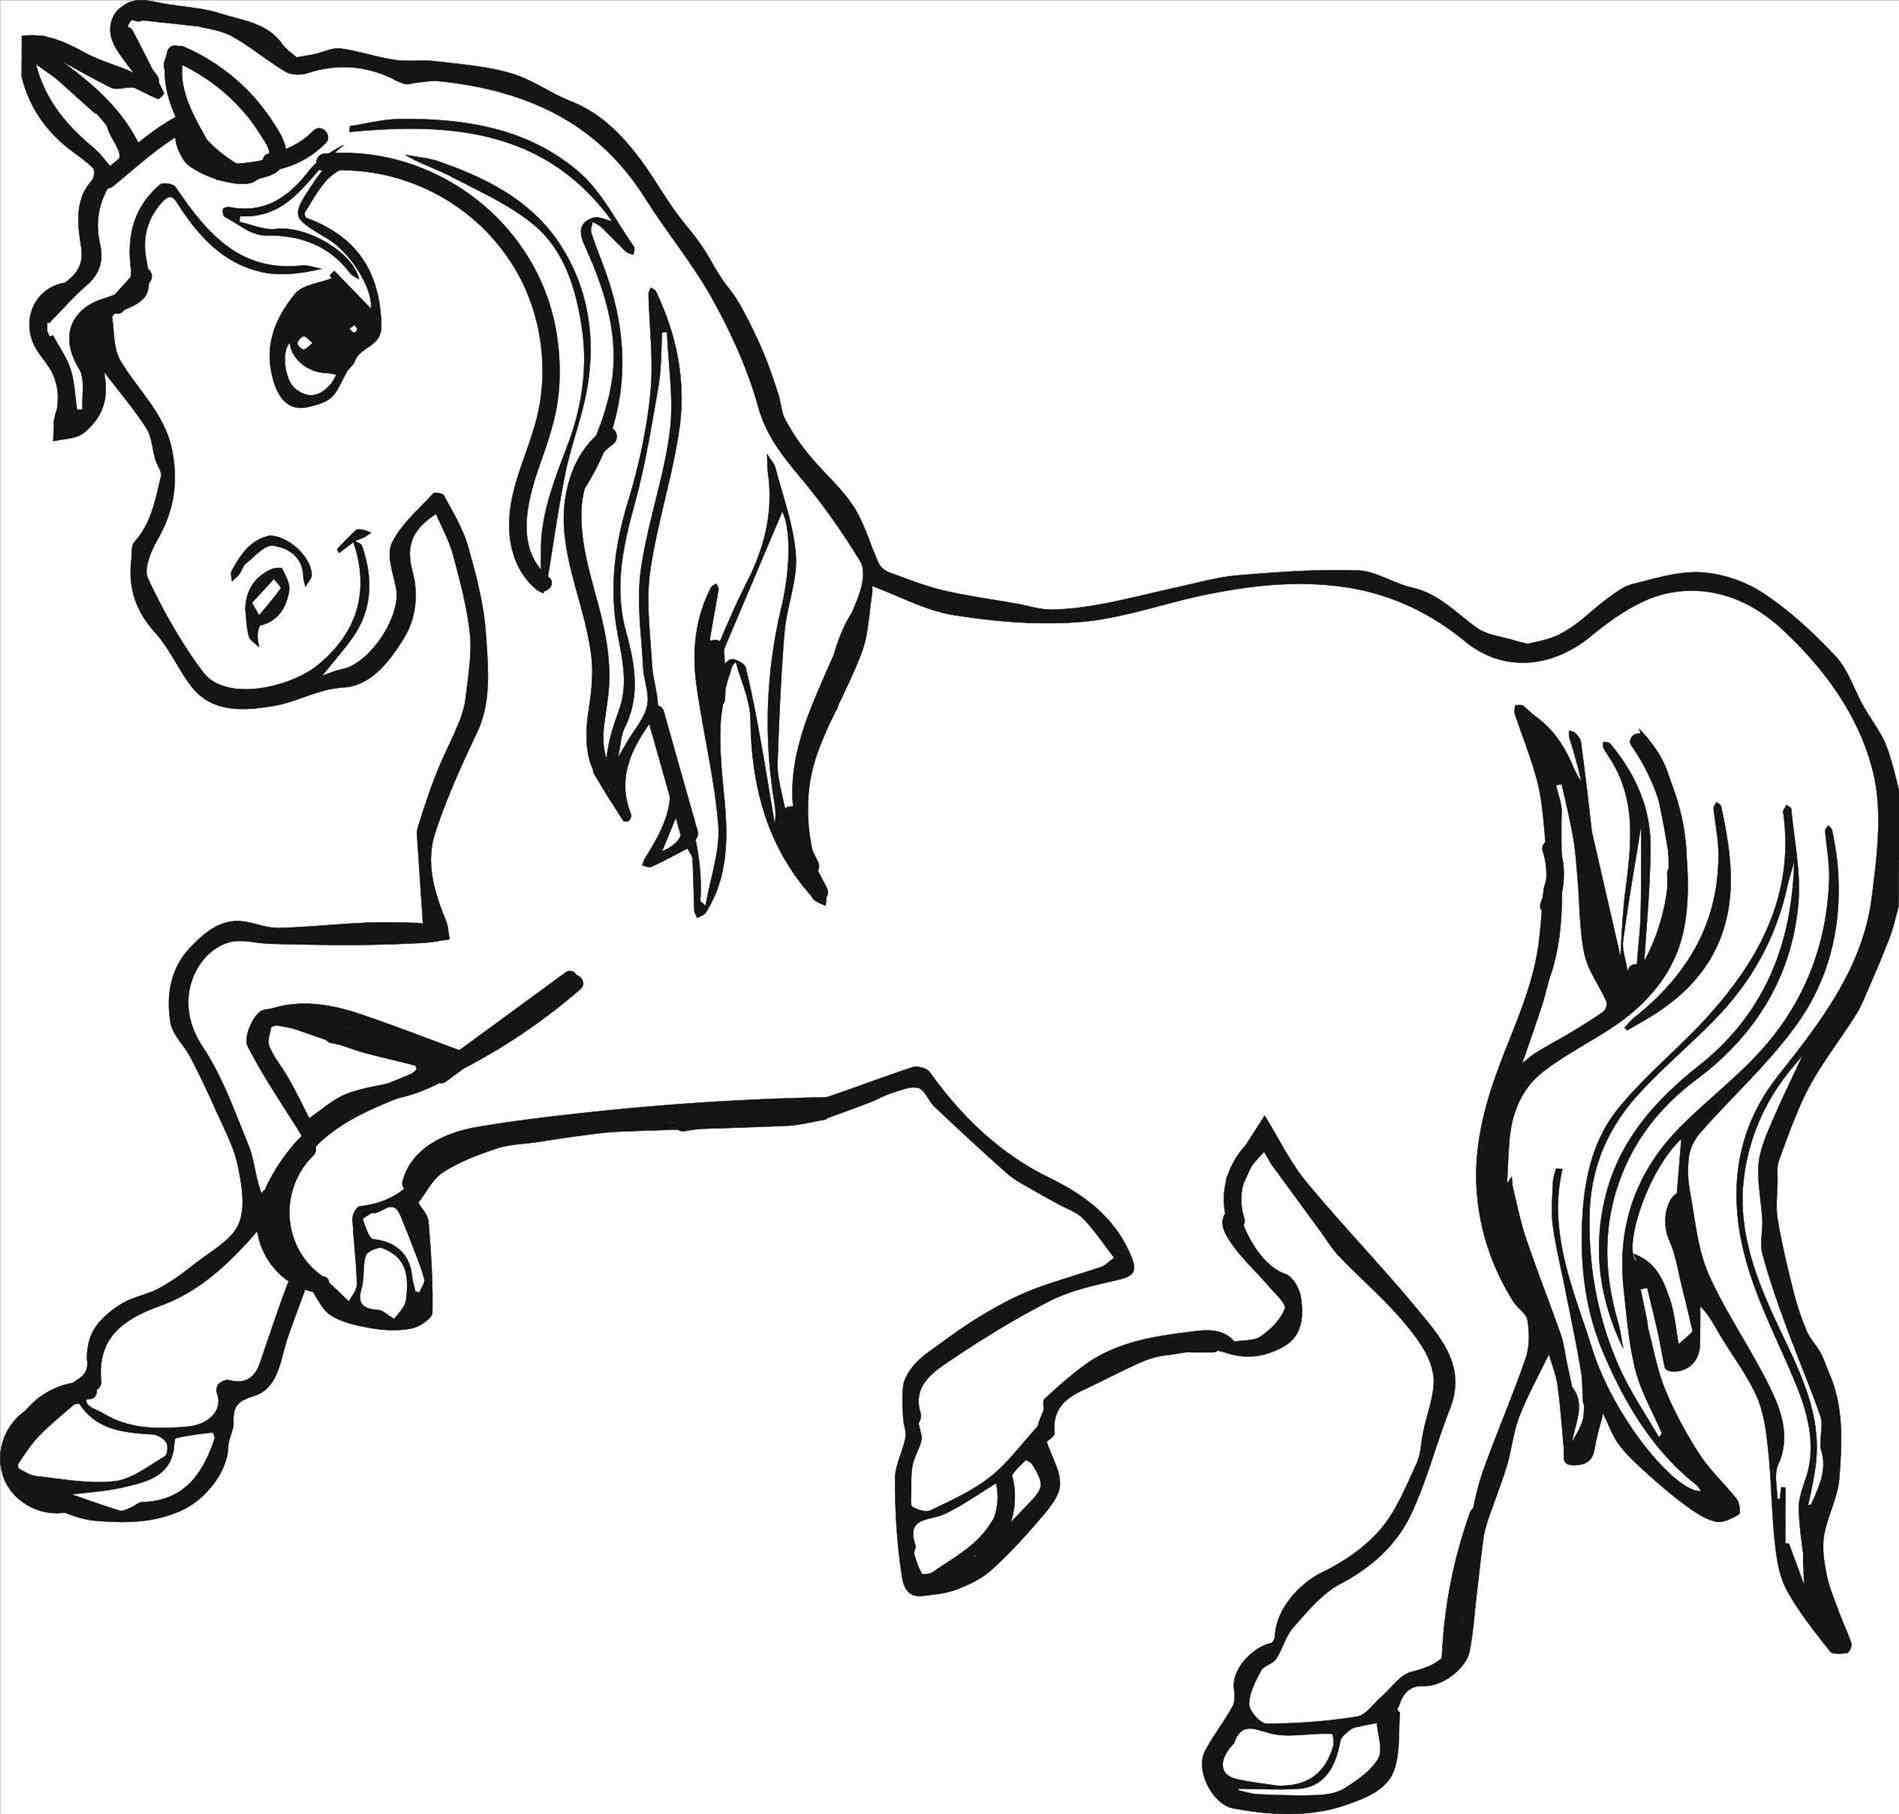 1899x1814 Games Coloring Pages For Adults Pichers Of S Colors Animal Horse